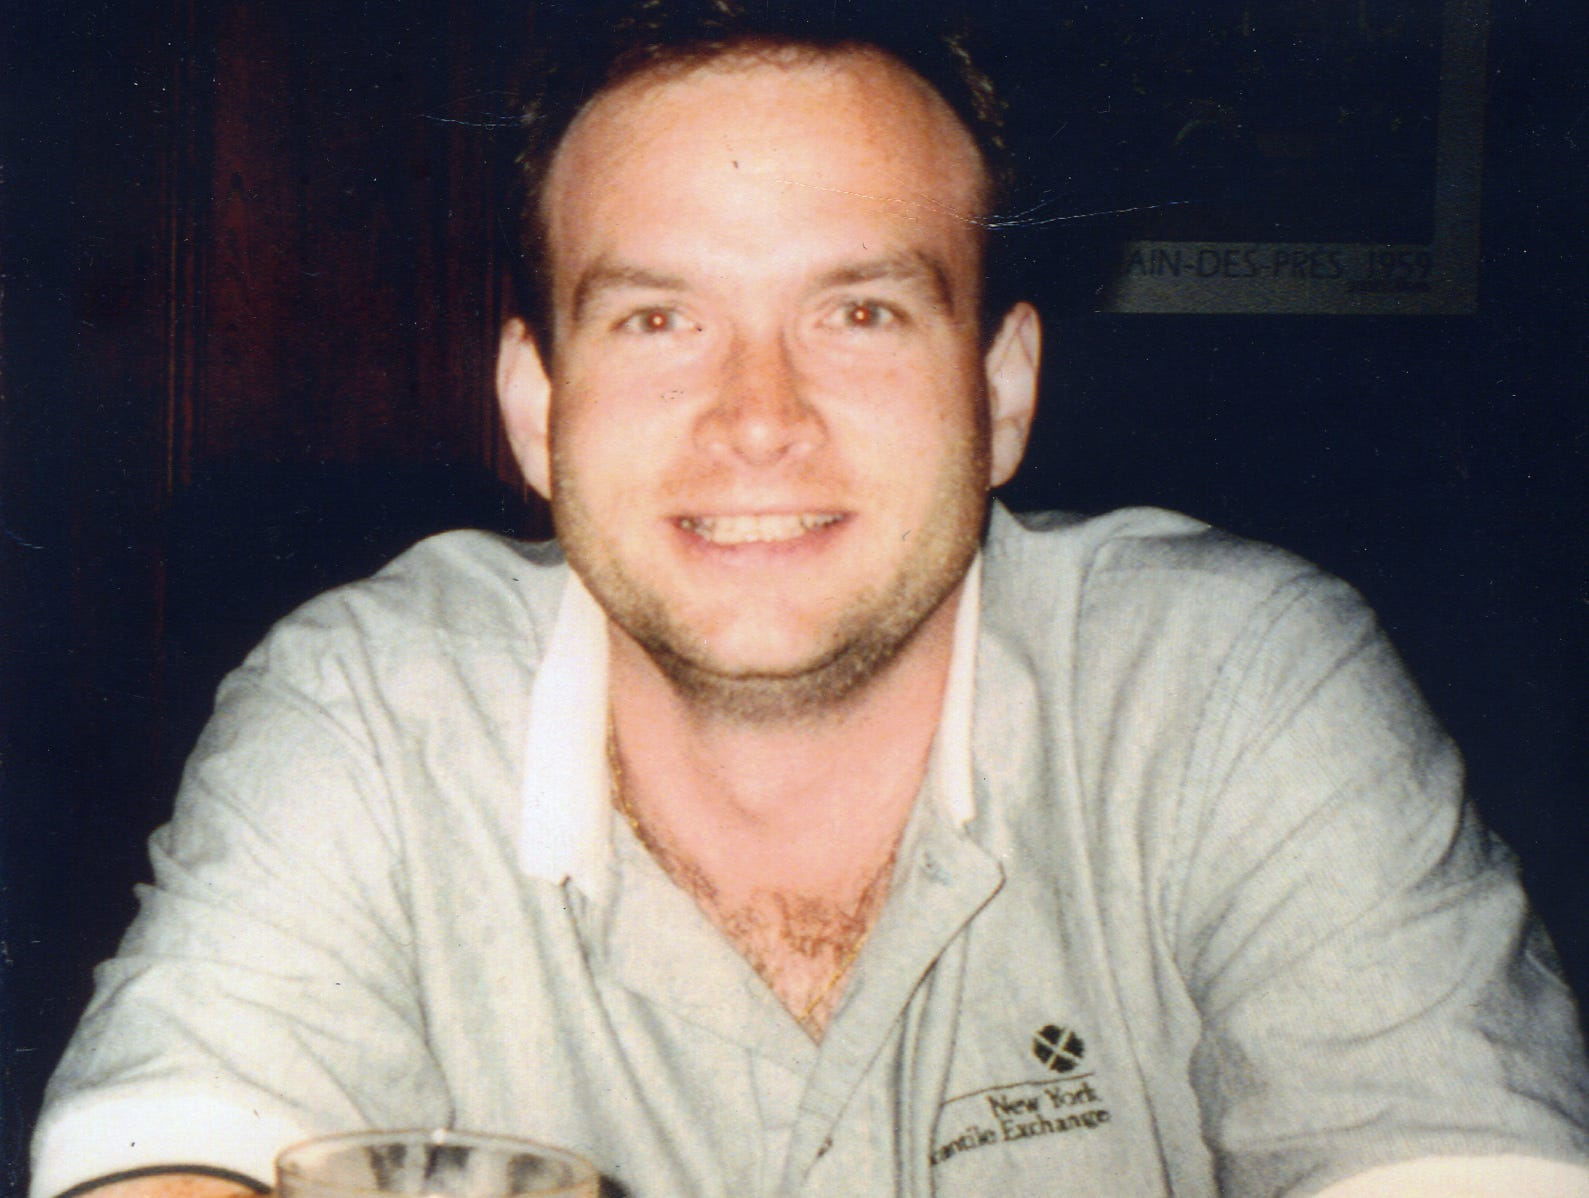 Former Oakland resident Thomas McGinnis, who died at the World Trade Center on 9/11; Photo courtesy of Iliana McGinnis.